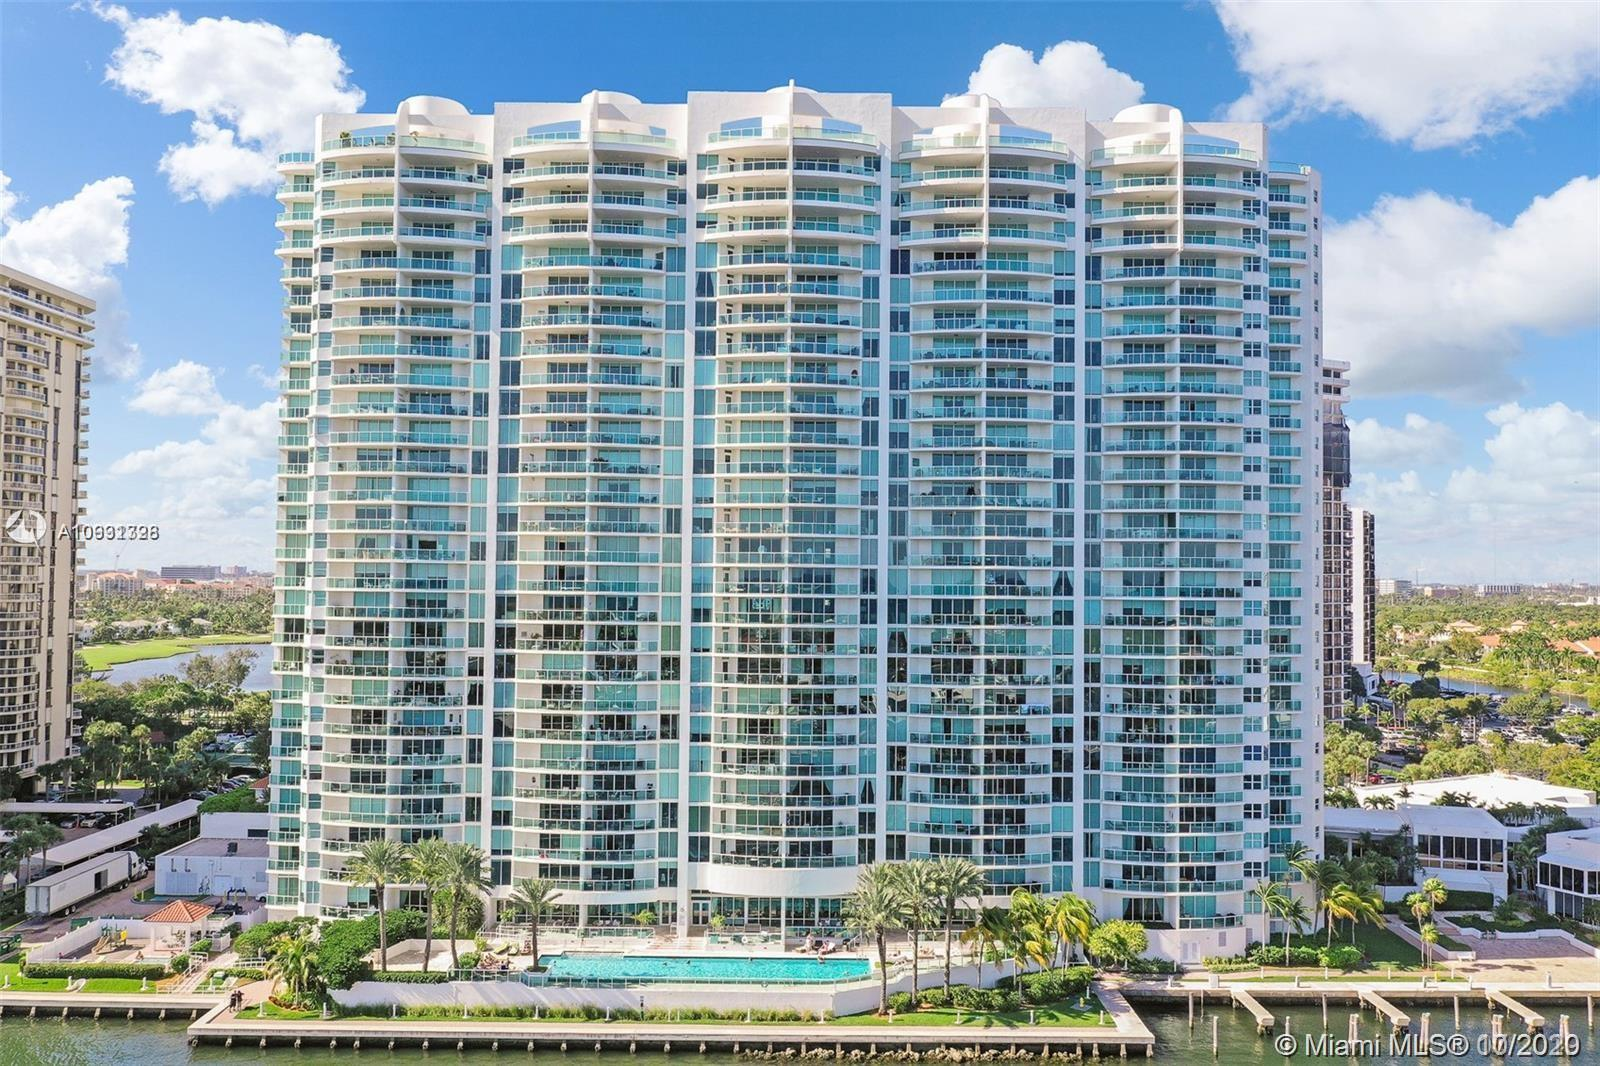 Photo of 20201 Country Club Dr #2407, Aventura, Florida, 33180 - Drone view of Hamptons South.